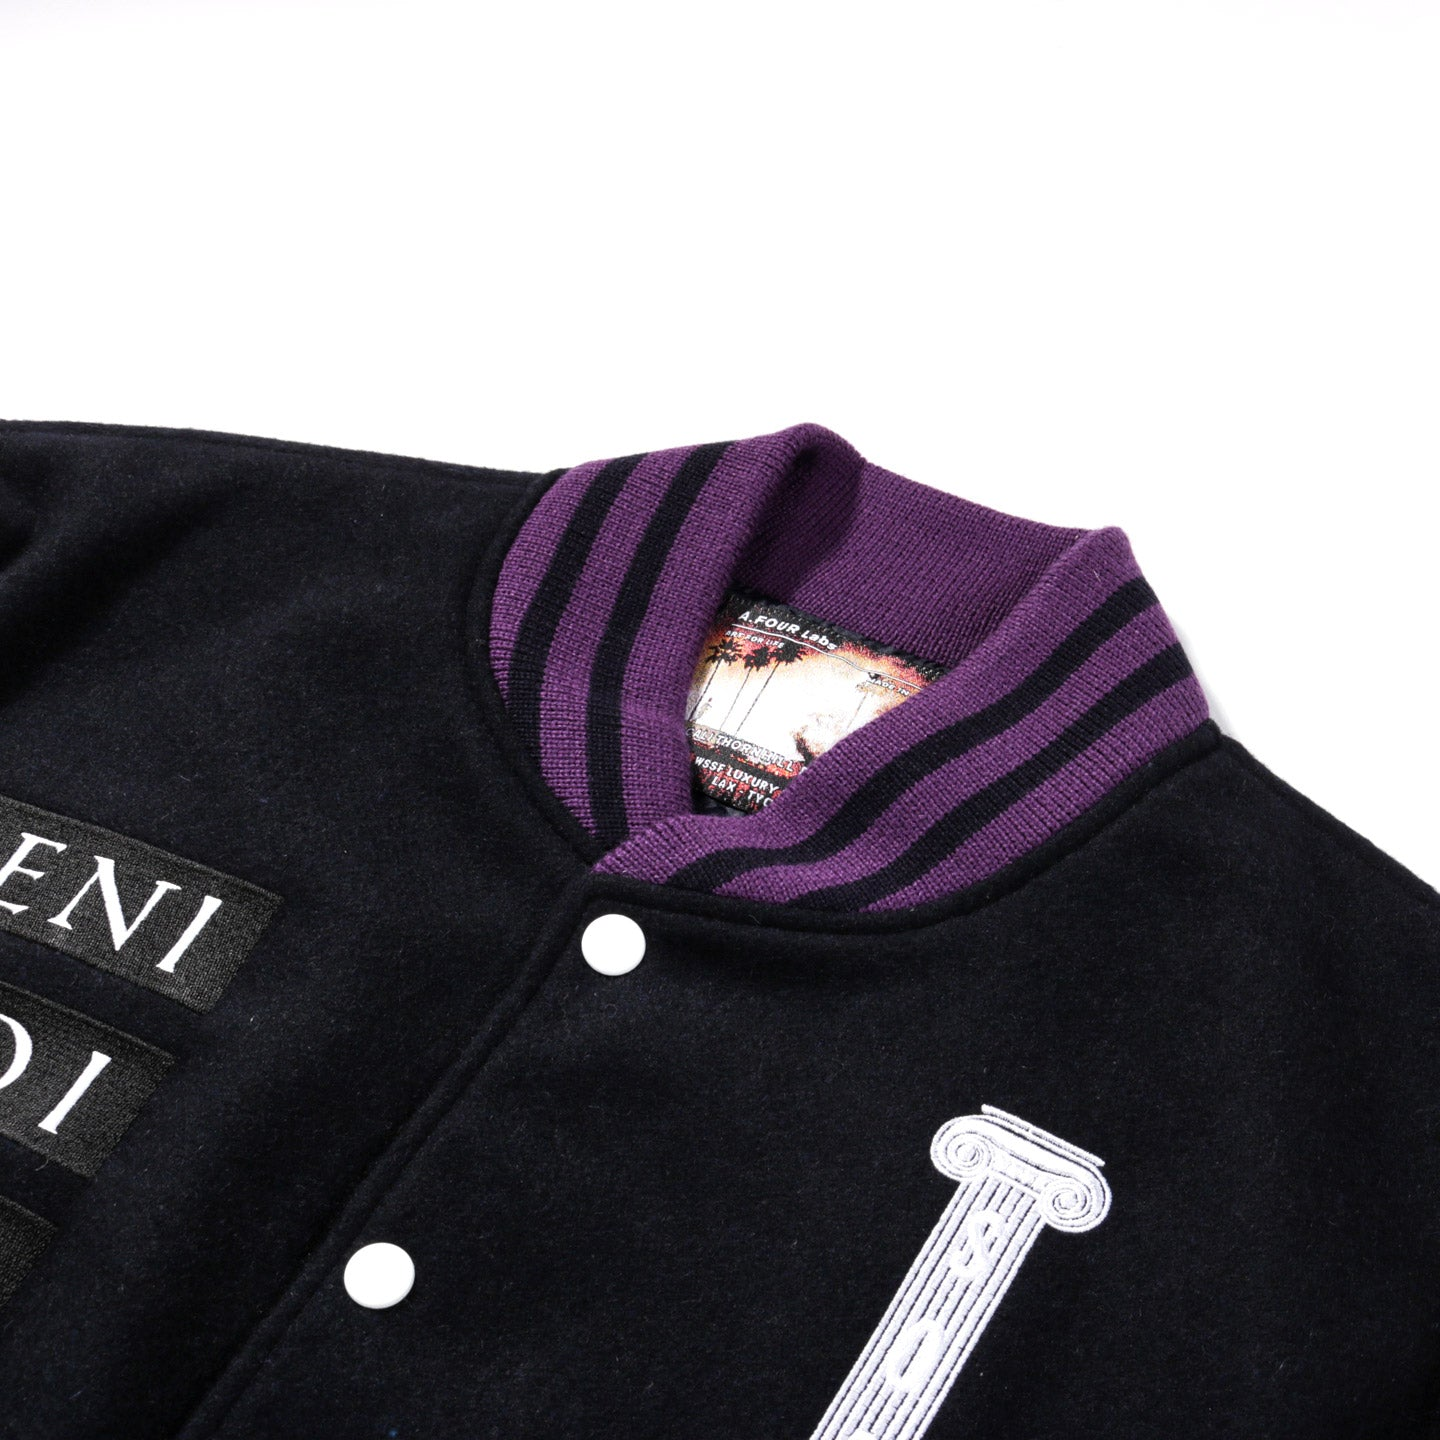 A.FOUR X CALI THORNHILL DEWITT DAVID LETTERMAN JACKET NAVY